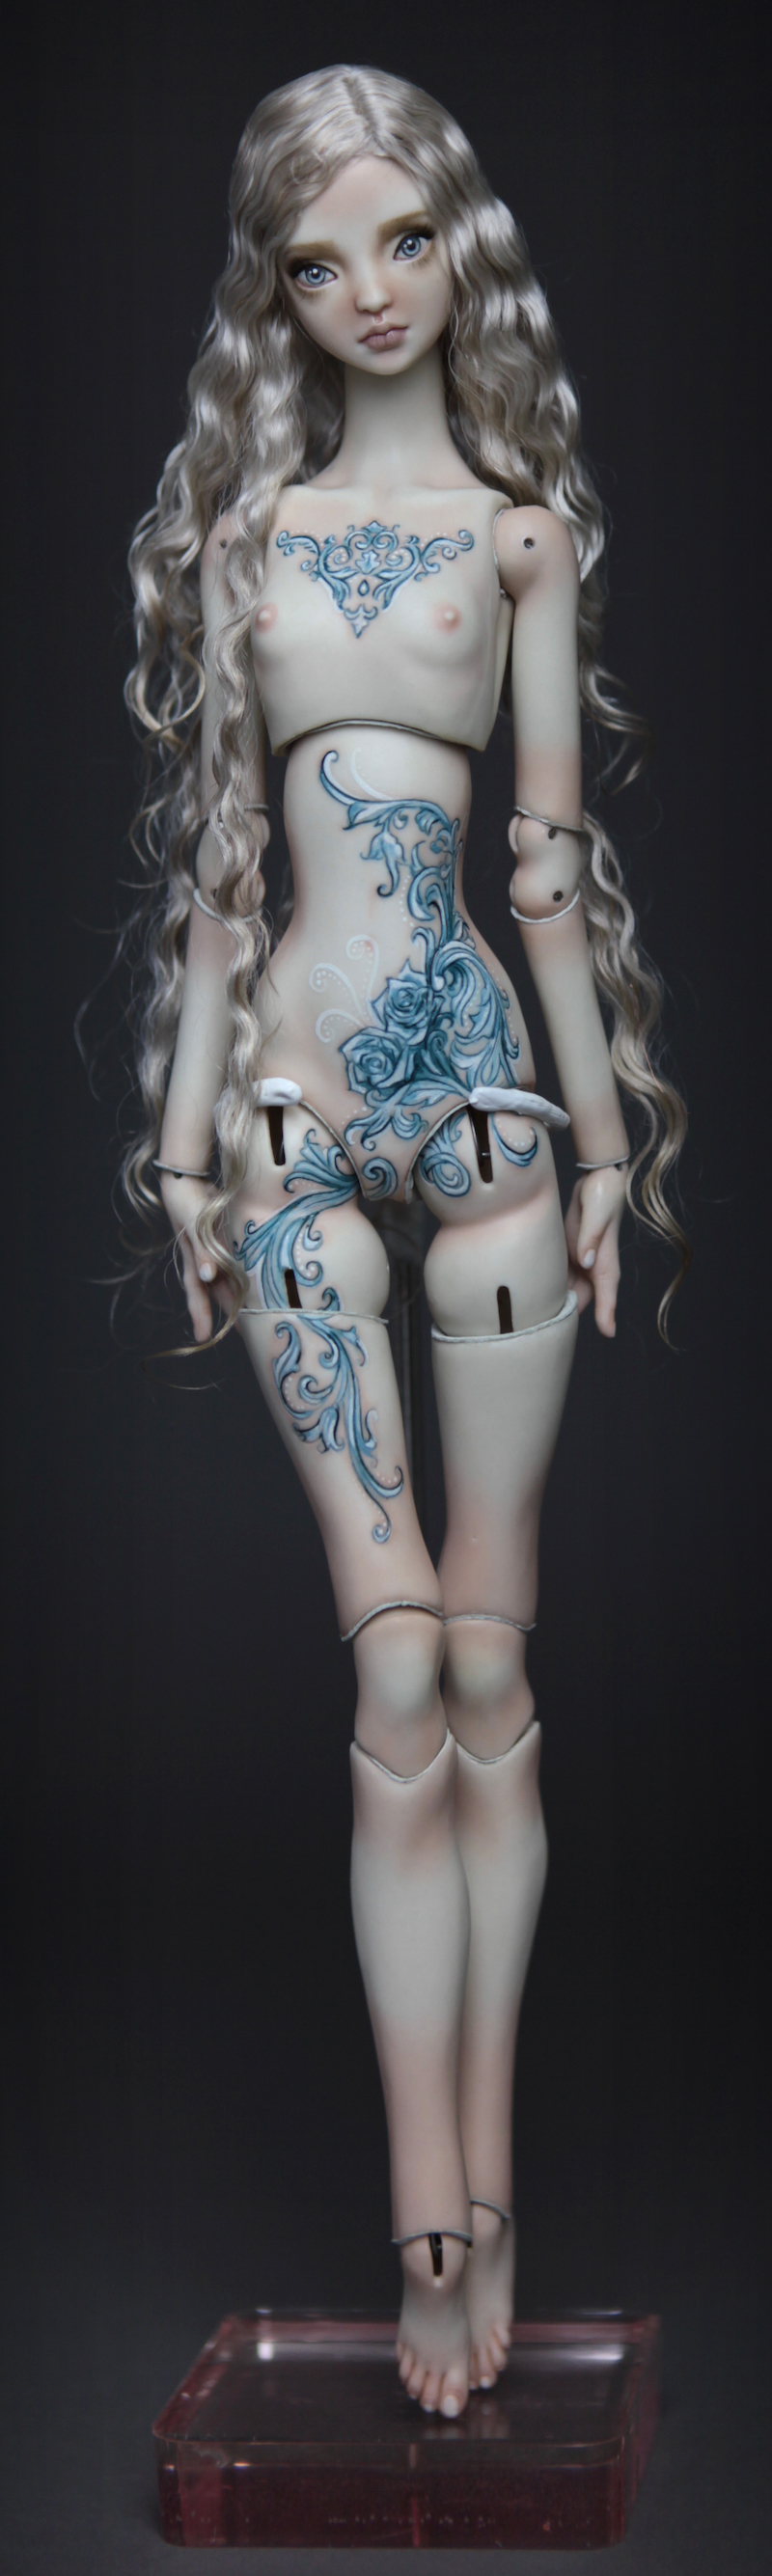 BJD Doll Ball Jointed Tattoed Baroque Sphinx 7 15 Porcelain BJD Doll   Rococo Tattooed Sphinx